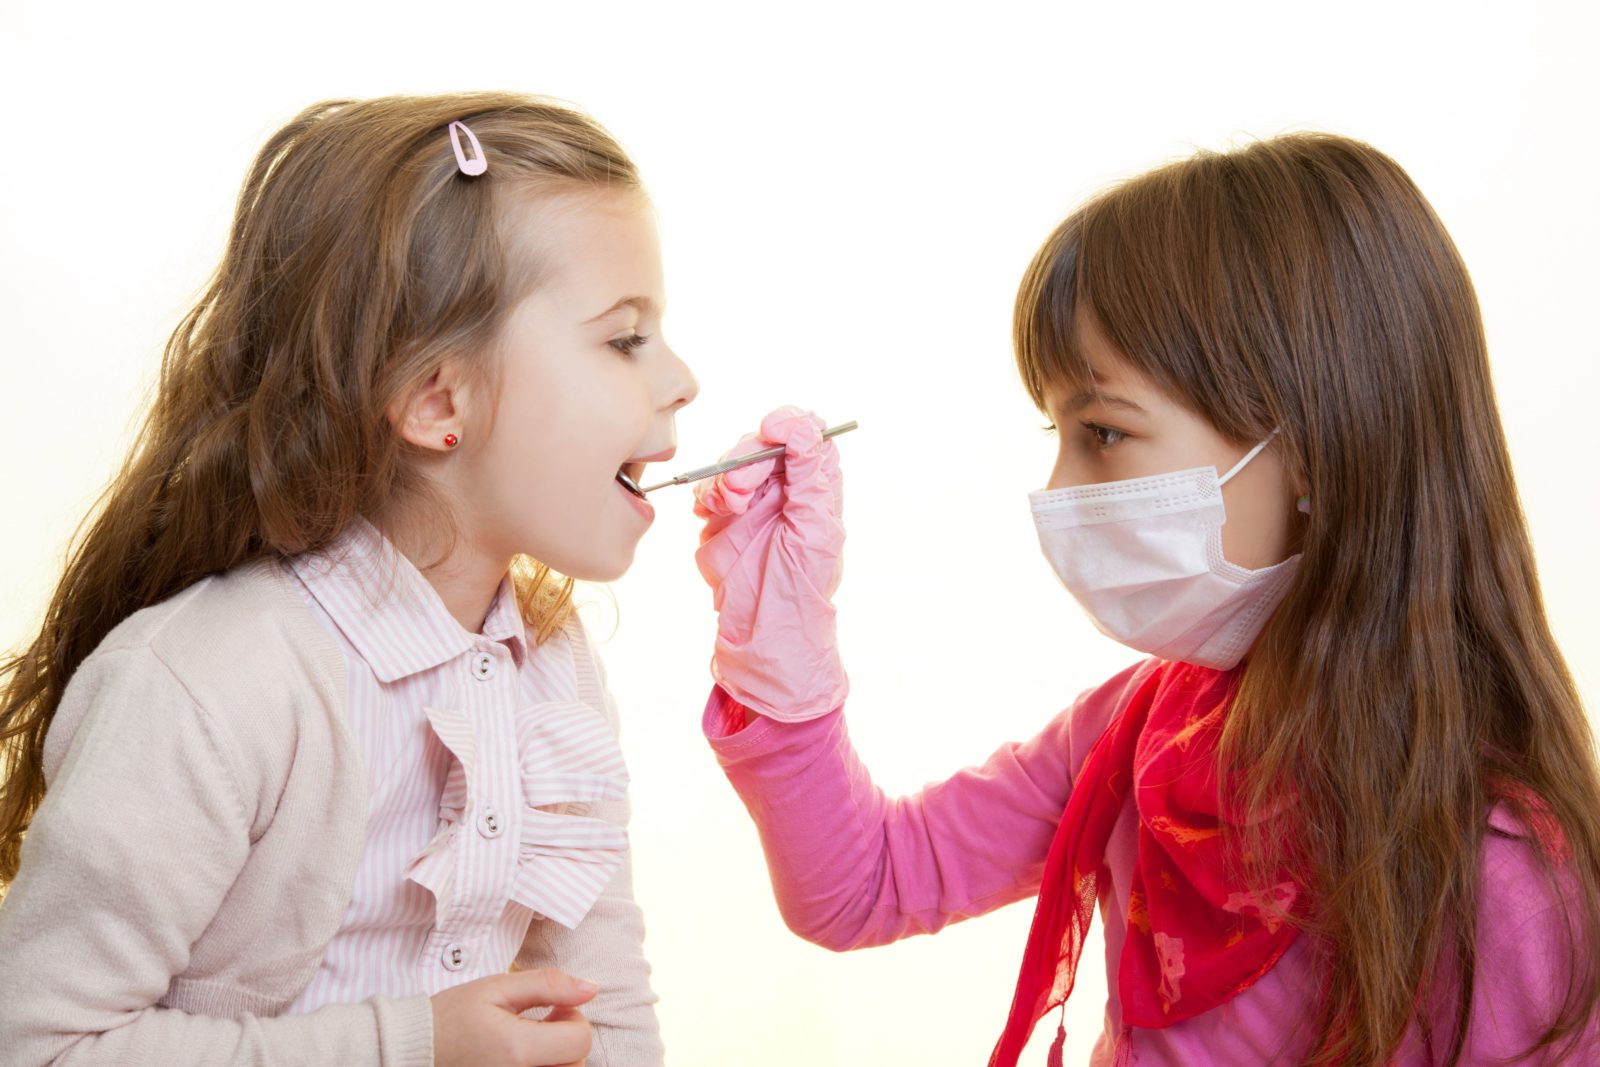 two young girls playing dentist